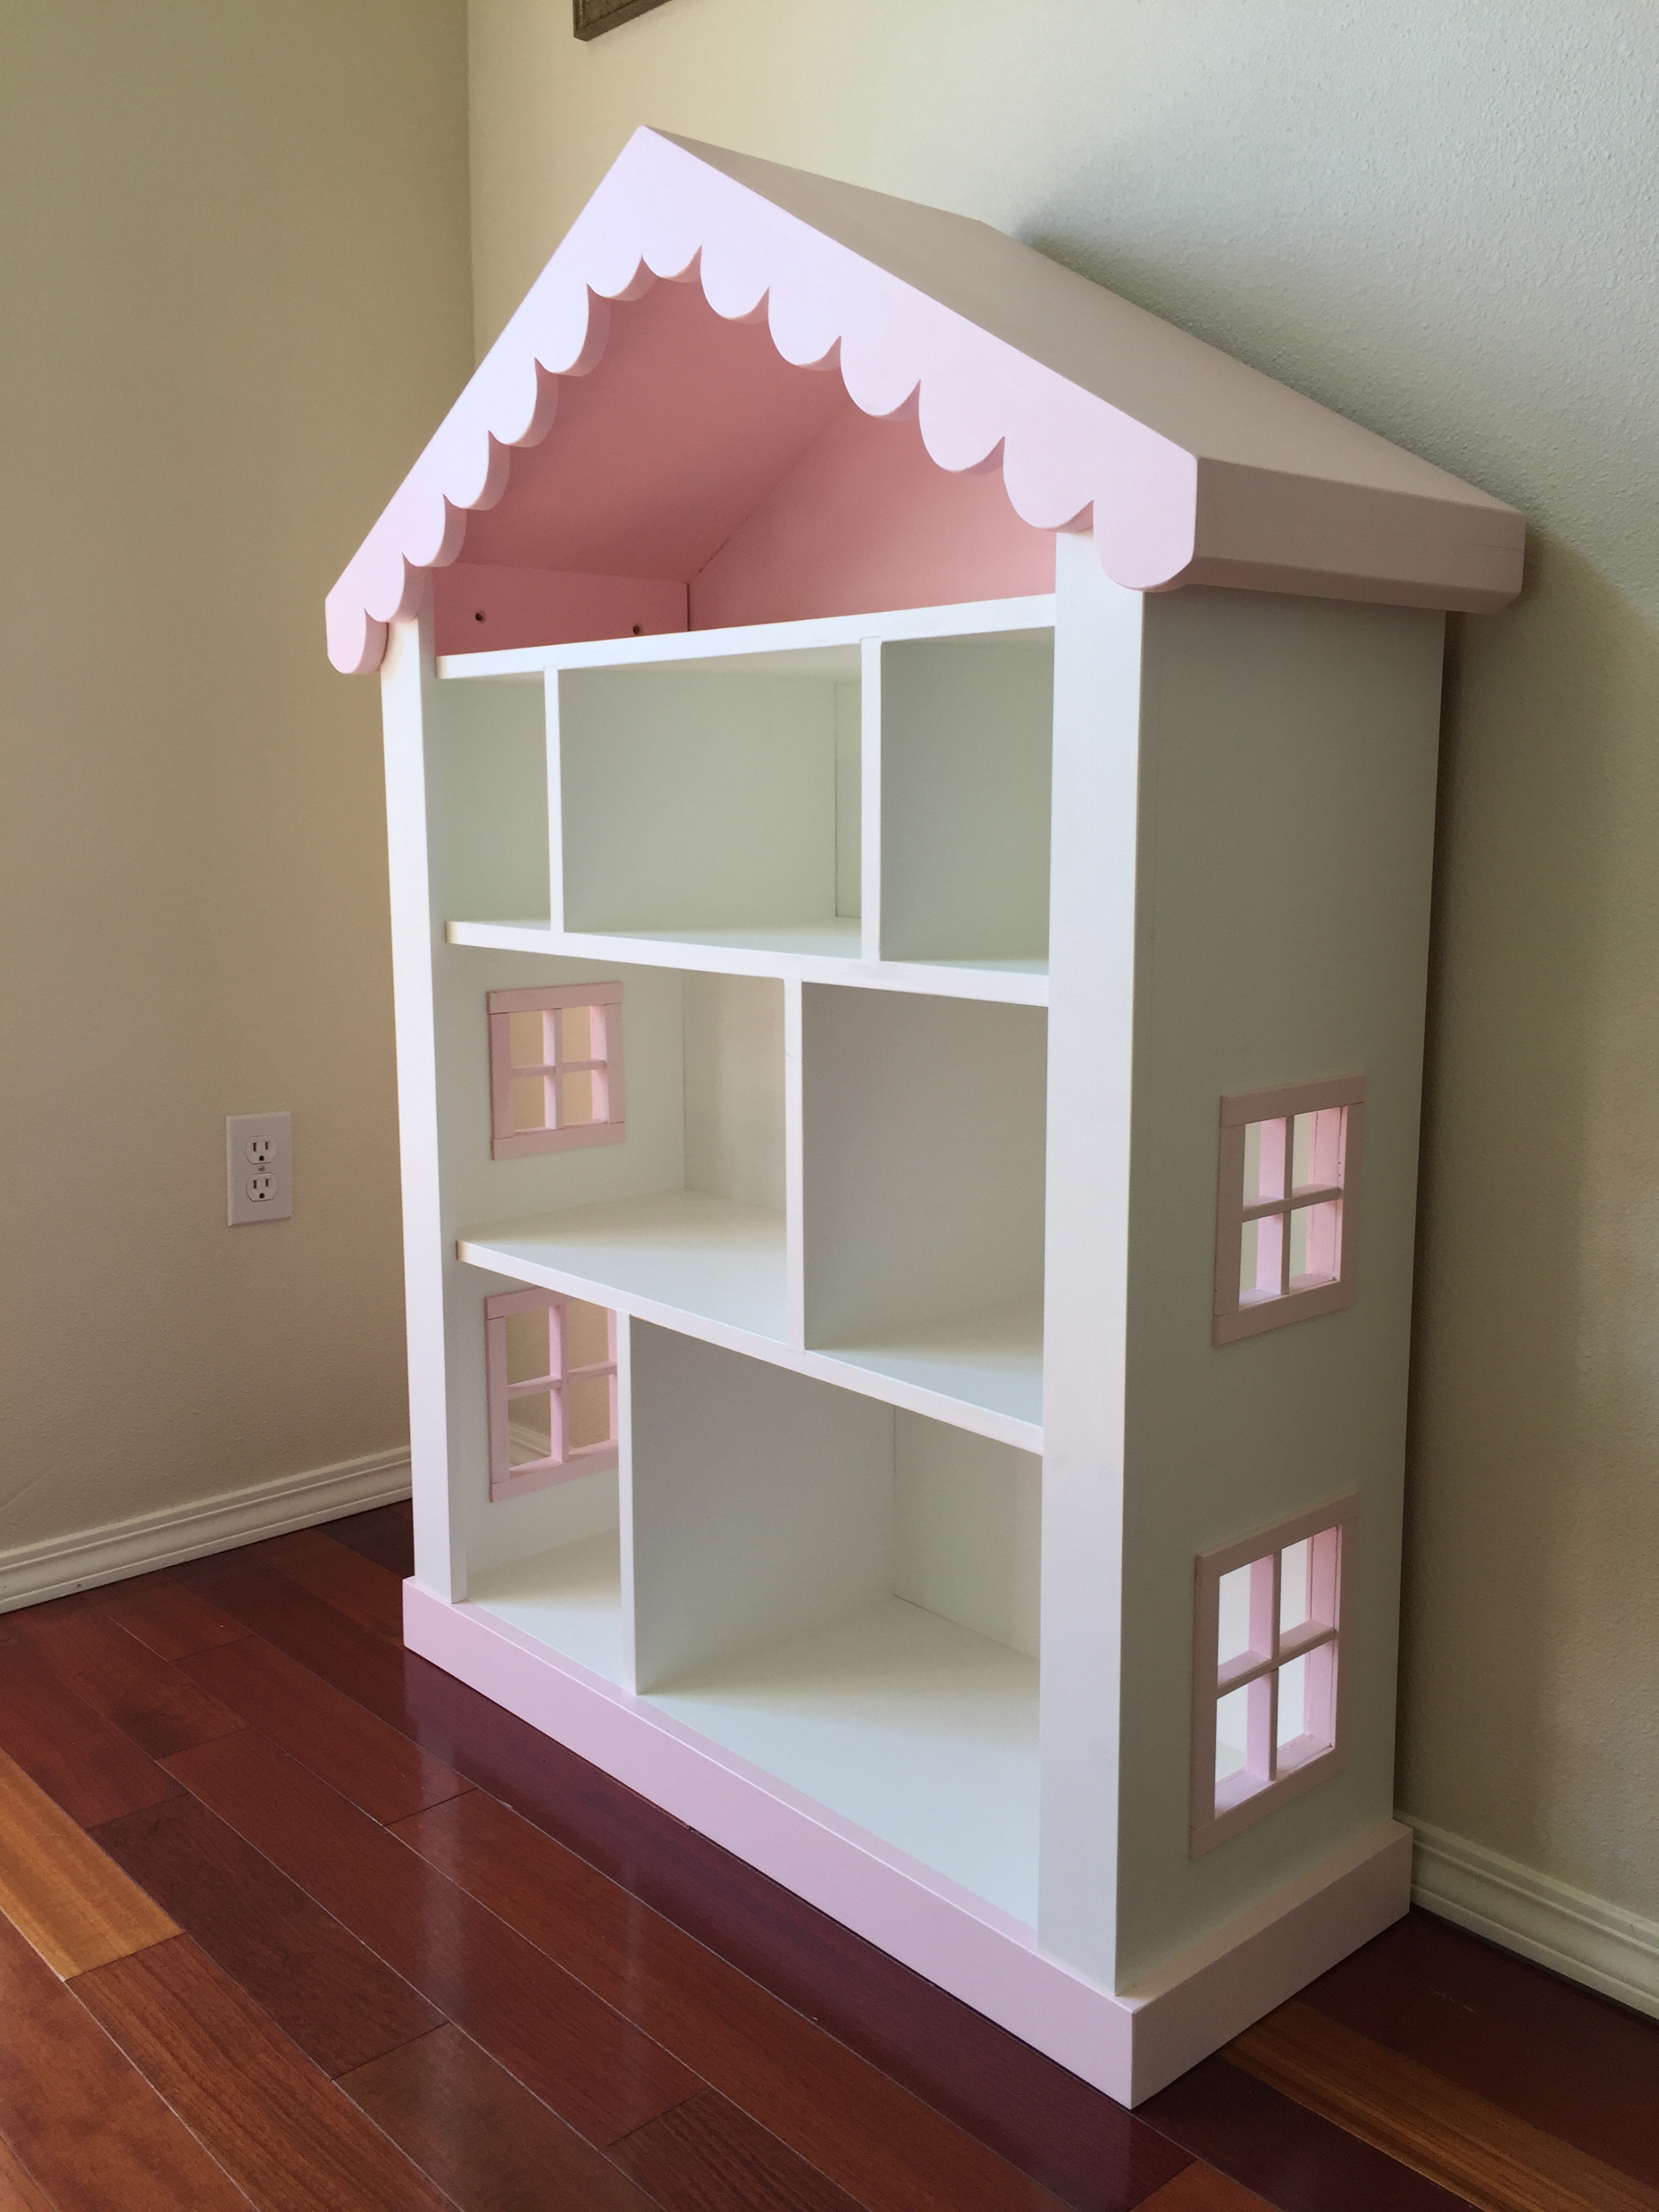 Dollhouse Bookcase Check it out! Dollhouse bookcase